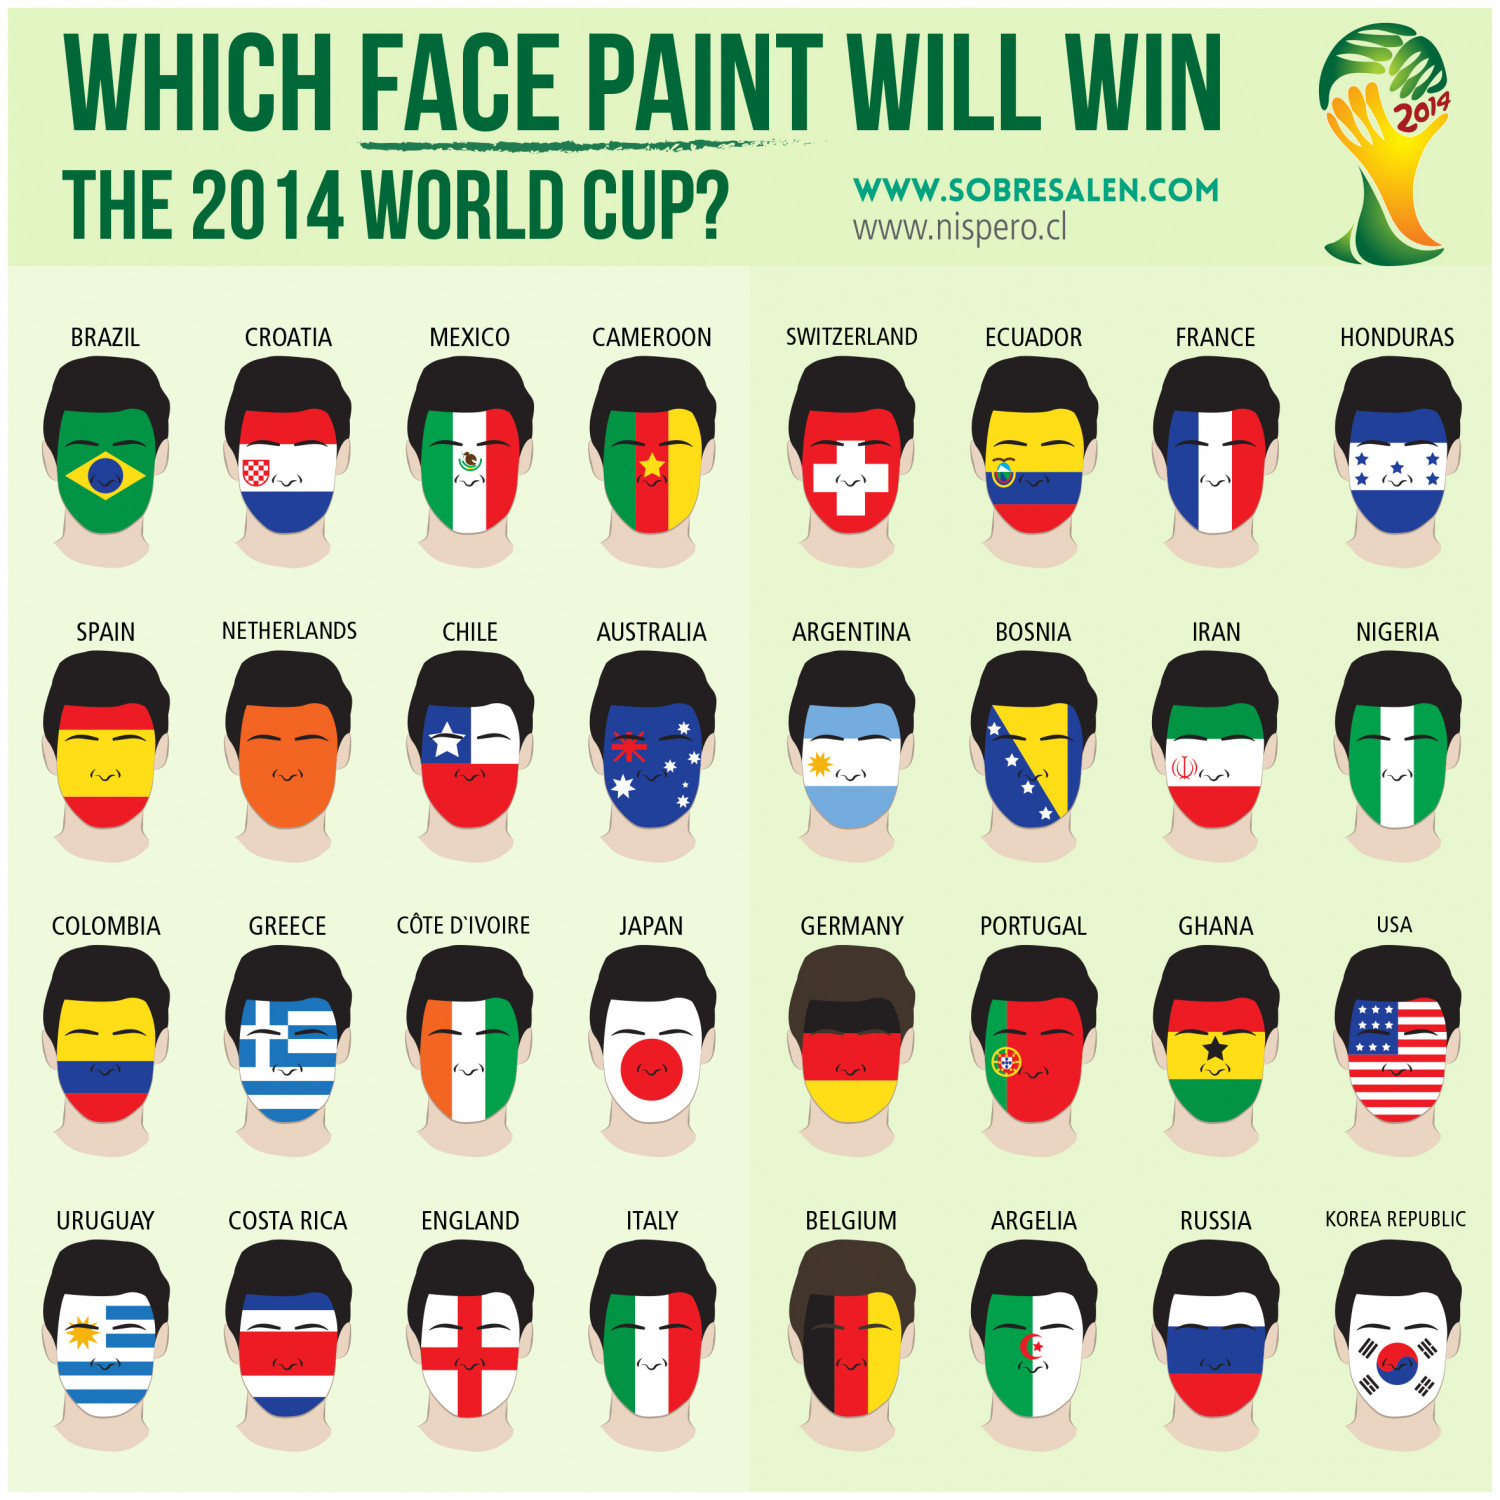 Which Face Paint Will Win the 2014 World Cup? Infographic